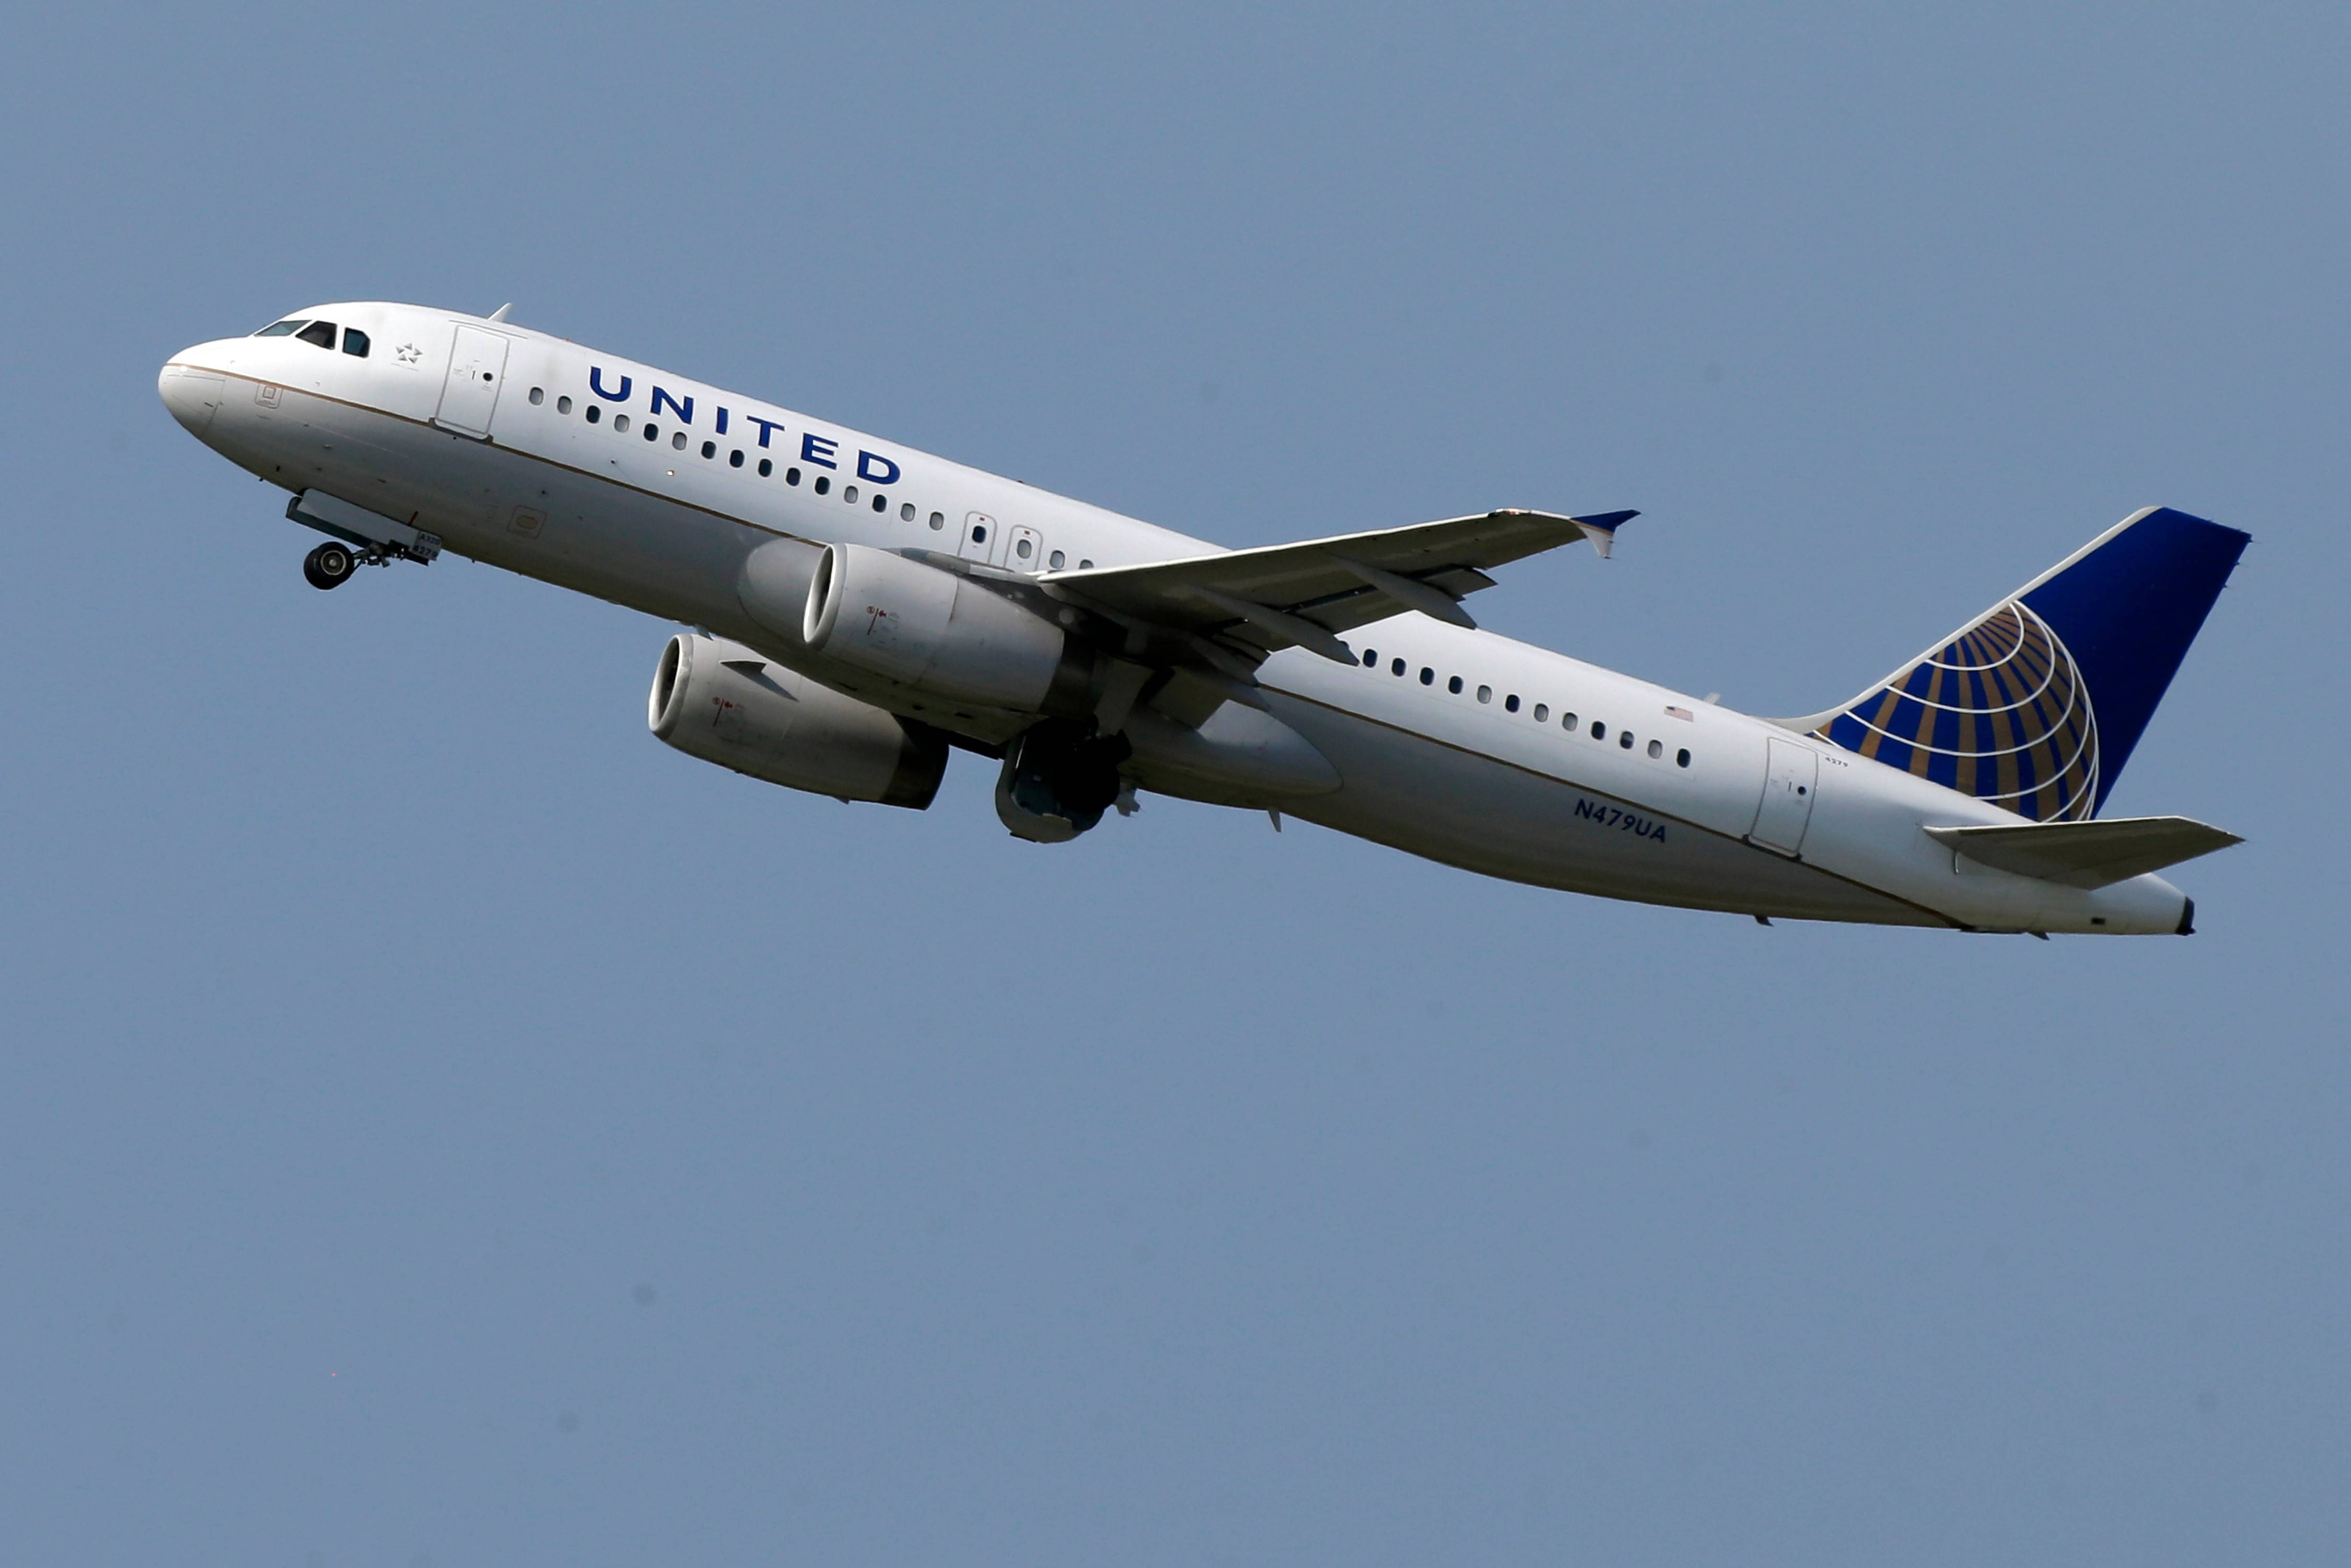 United CEO Oscar Munoz apologized for forcibly removing a passenger from a flight Sunday.